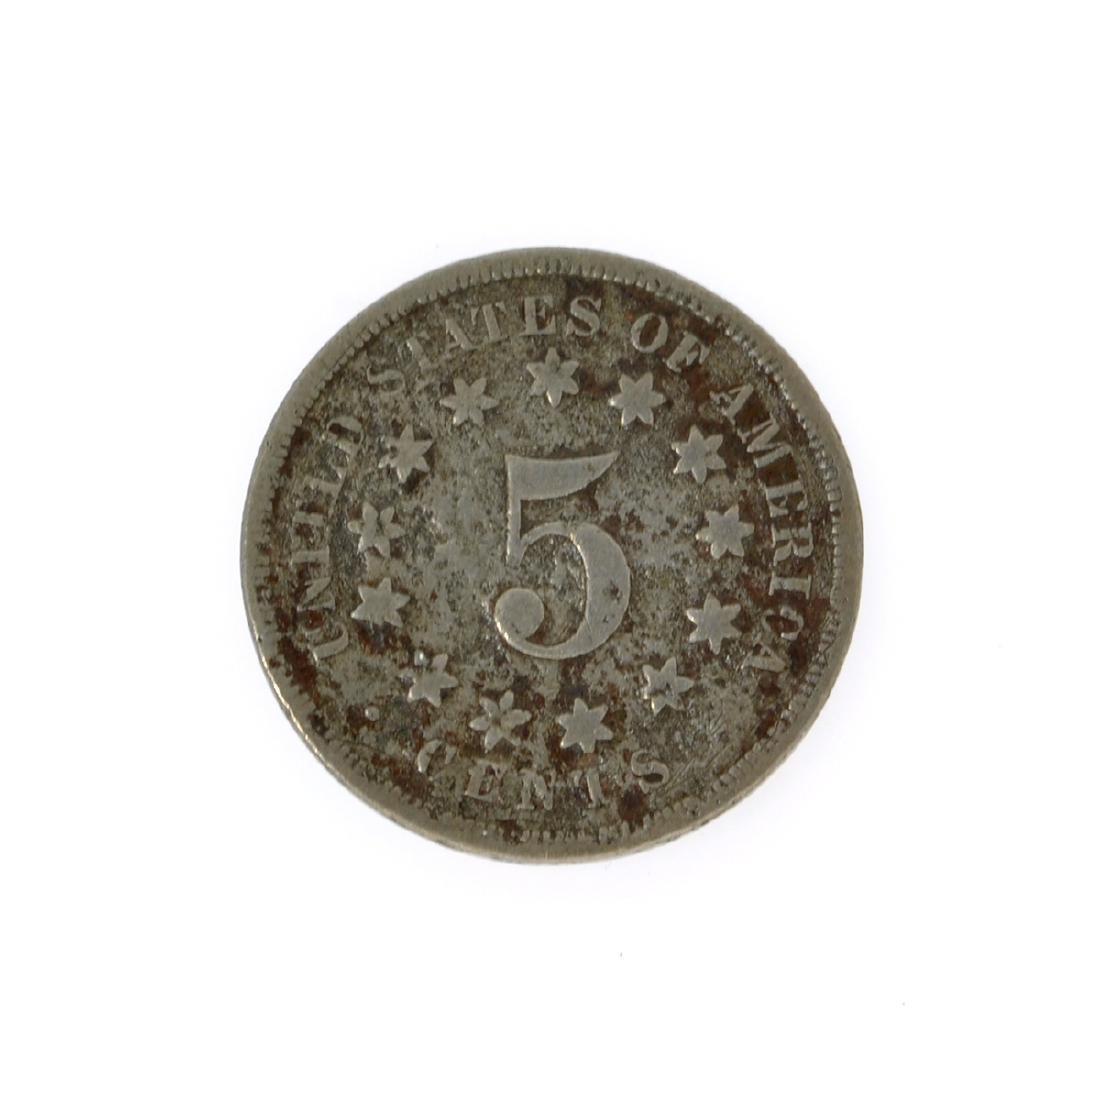 1868 Shield Nickel Coin - 2